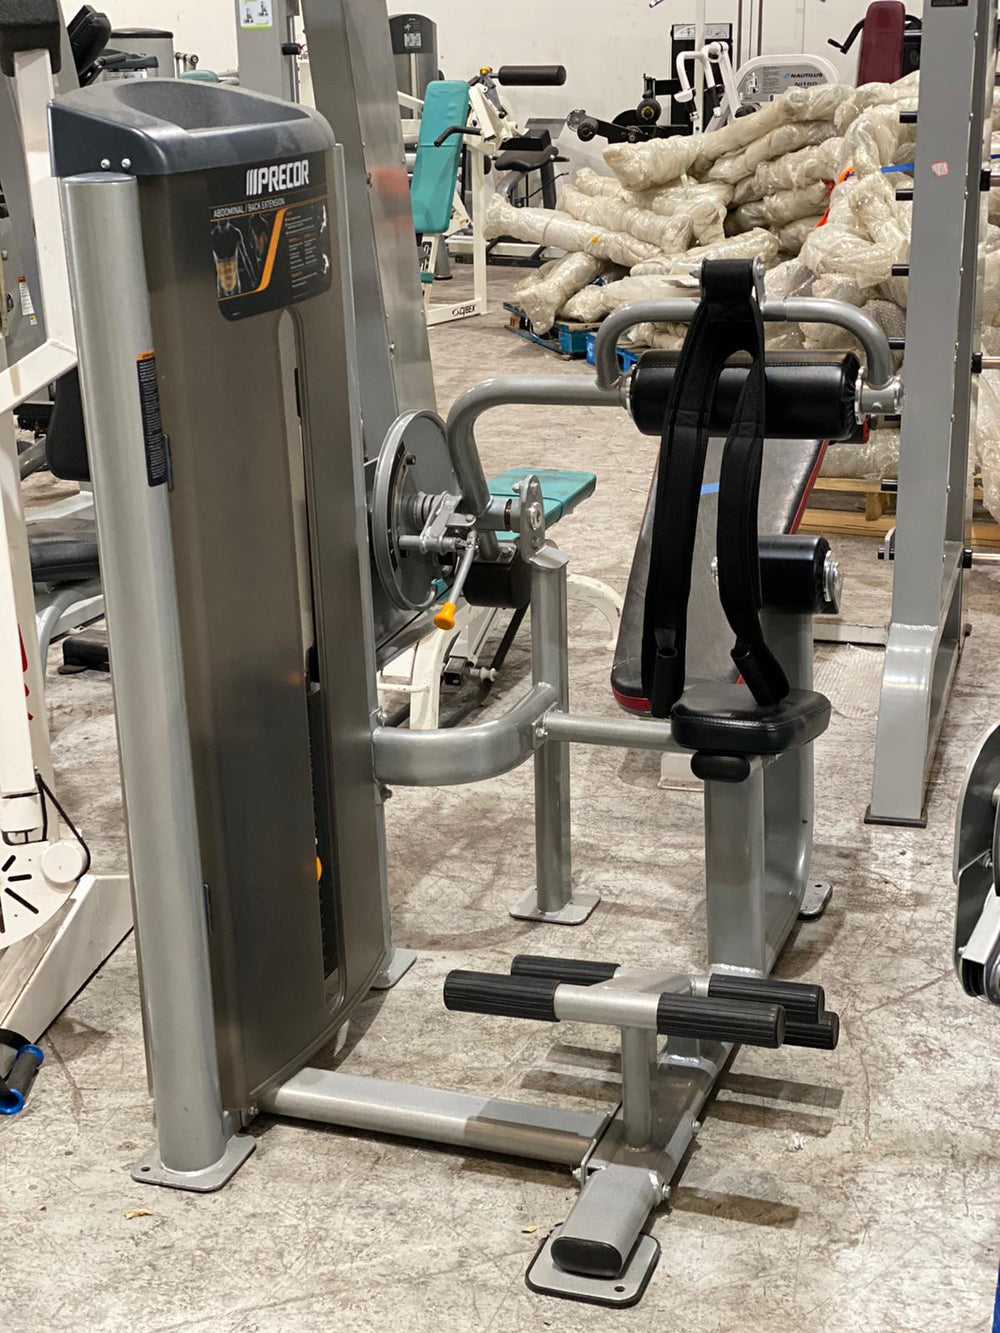 Precor Vitality Ab Crunch - Buy & Sell Fitness